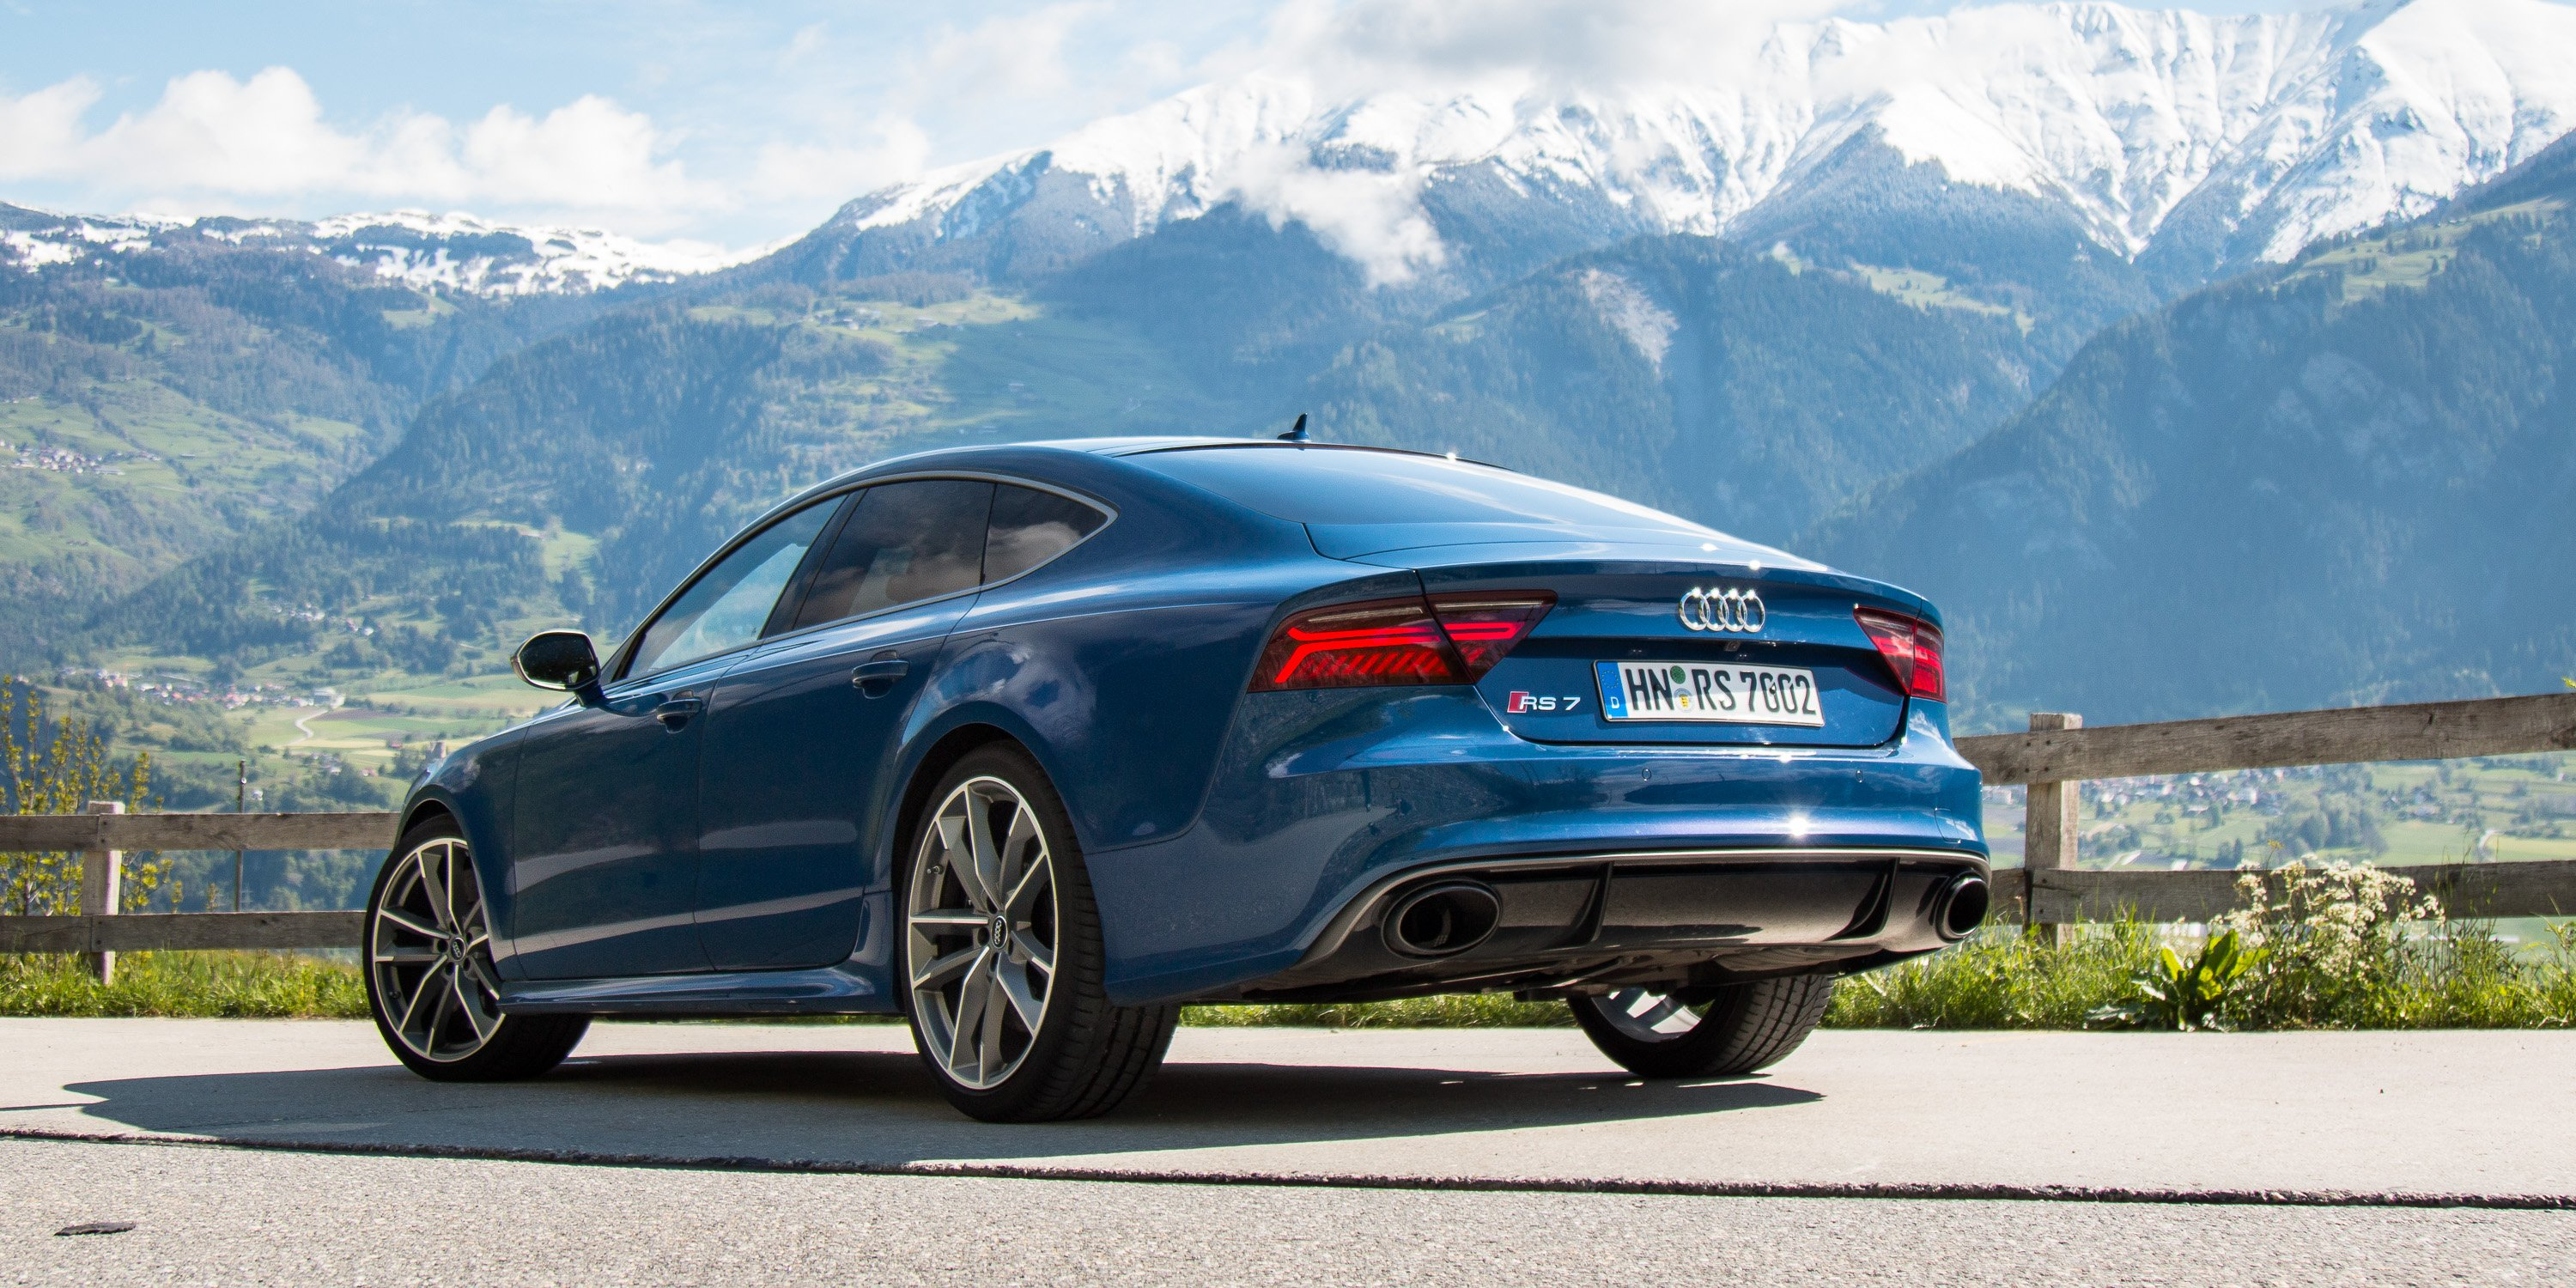 2016 Audi RS7 Sportback Performance Review | CarAdvice